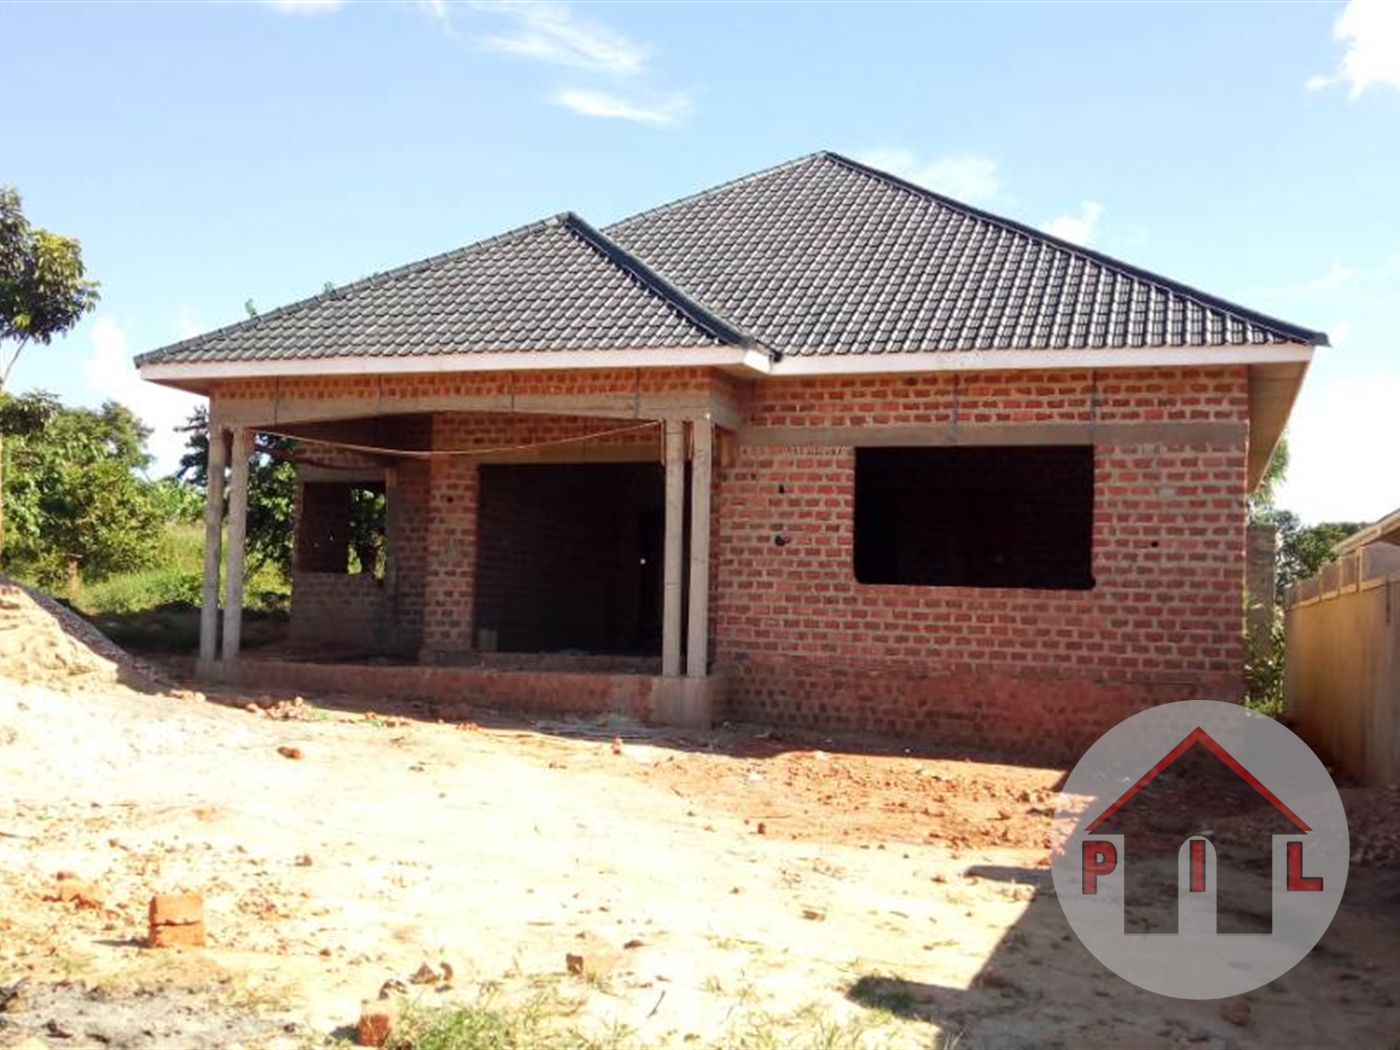 Shell House for sale in Namugongo Wakiso